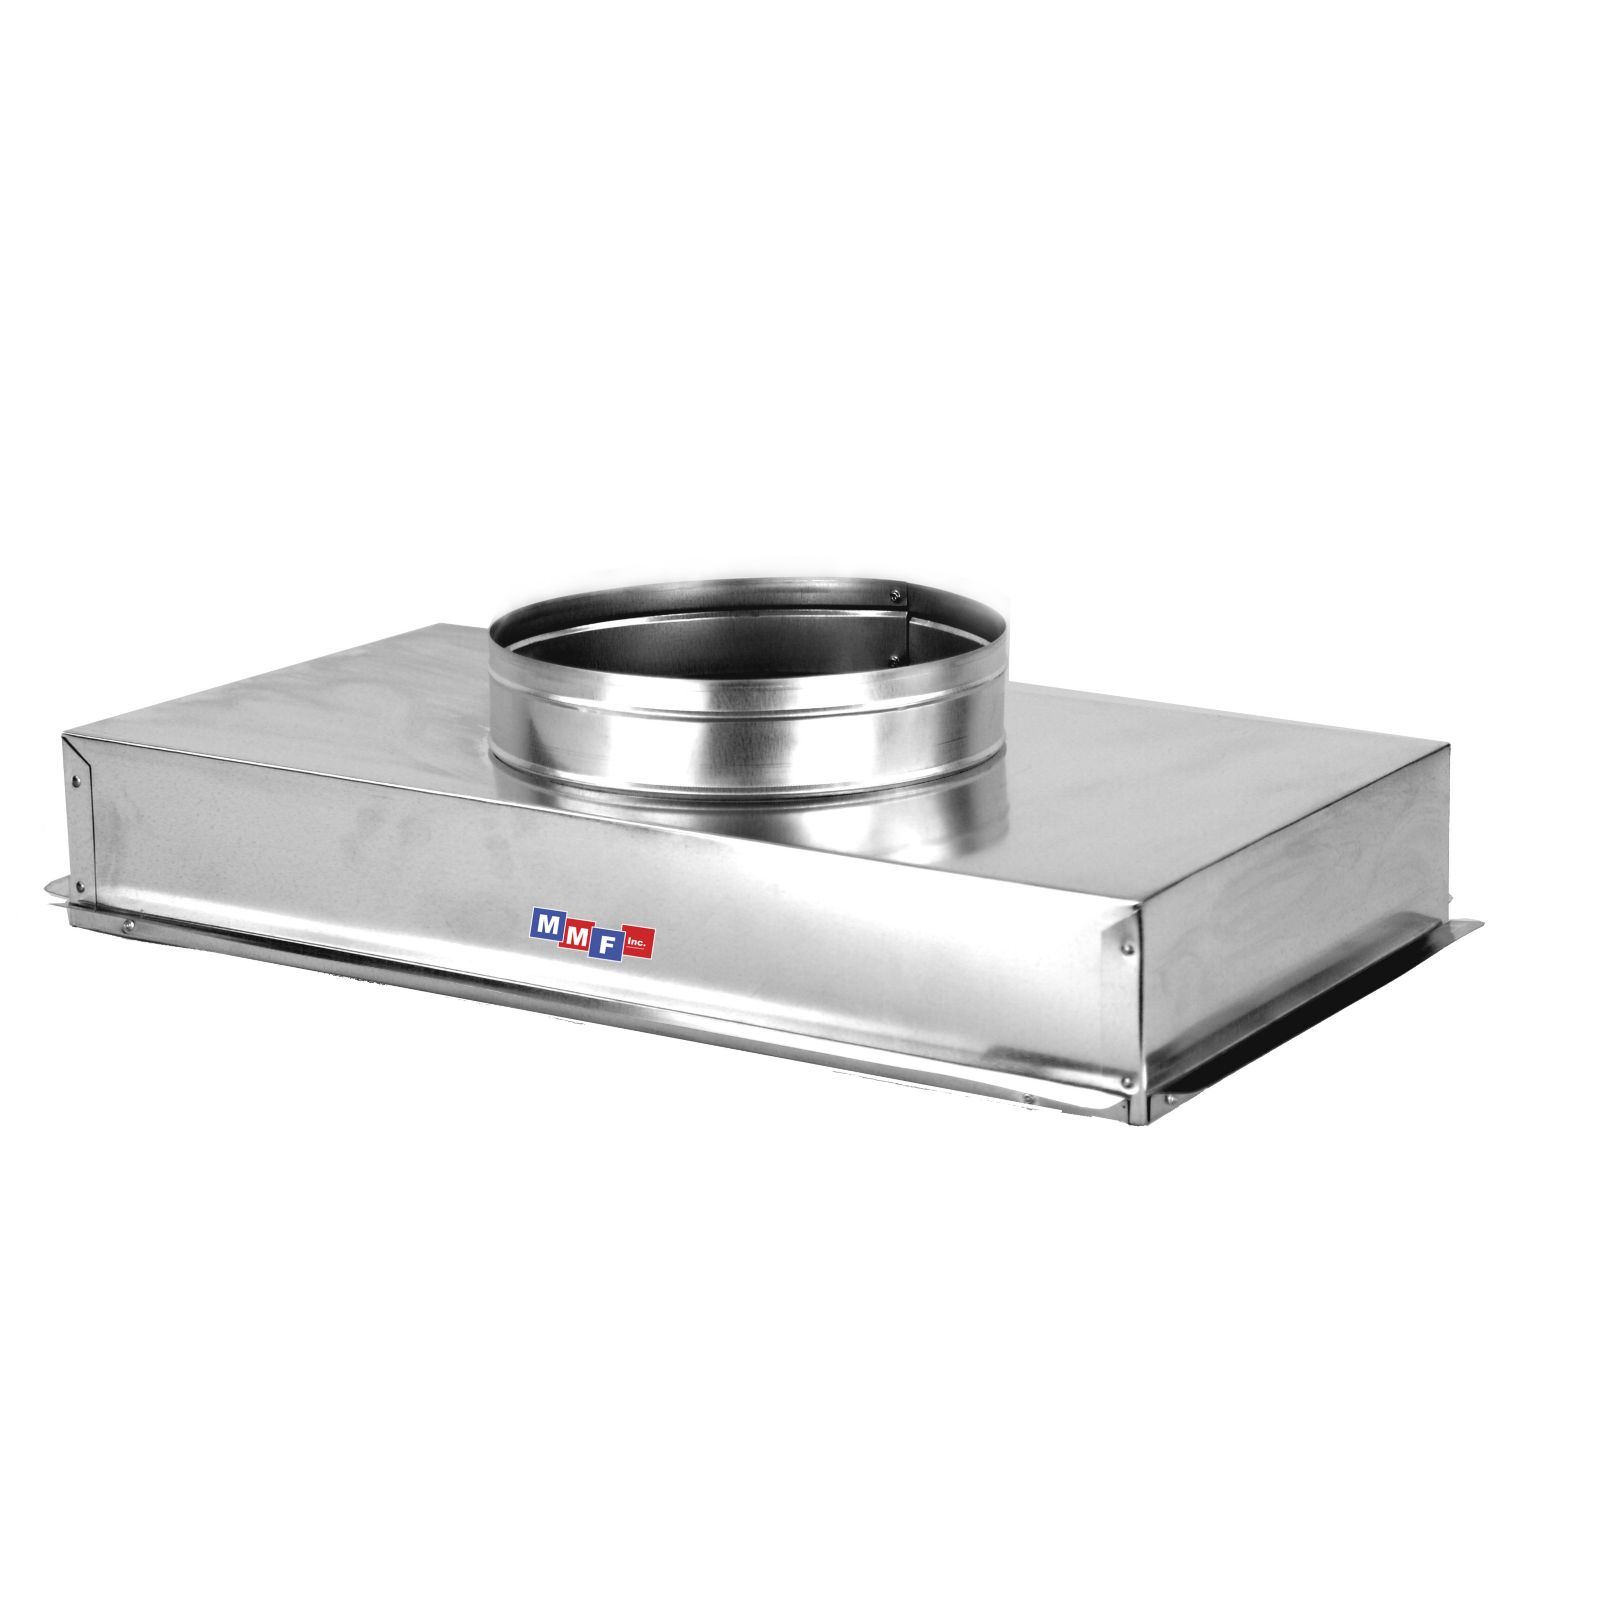 "Modular Metal ACRH2414AS - Return Air Can - 28 Gauge - Raw - Seal All Seams24 1/4"" X 14 1/4"" Uninsulated - 4"" High"